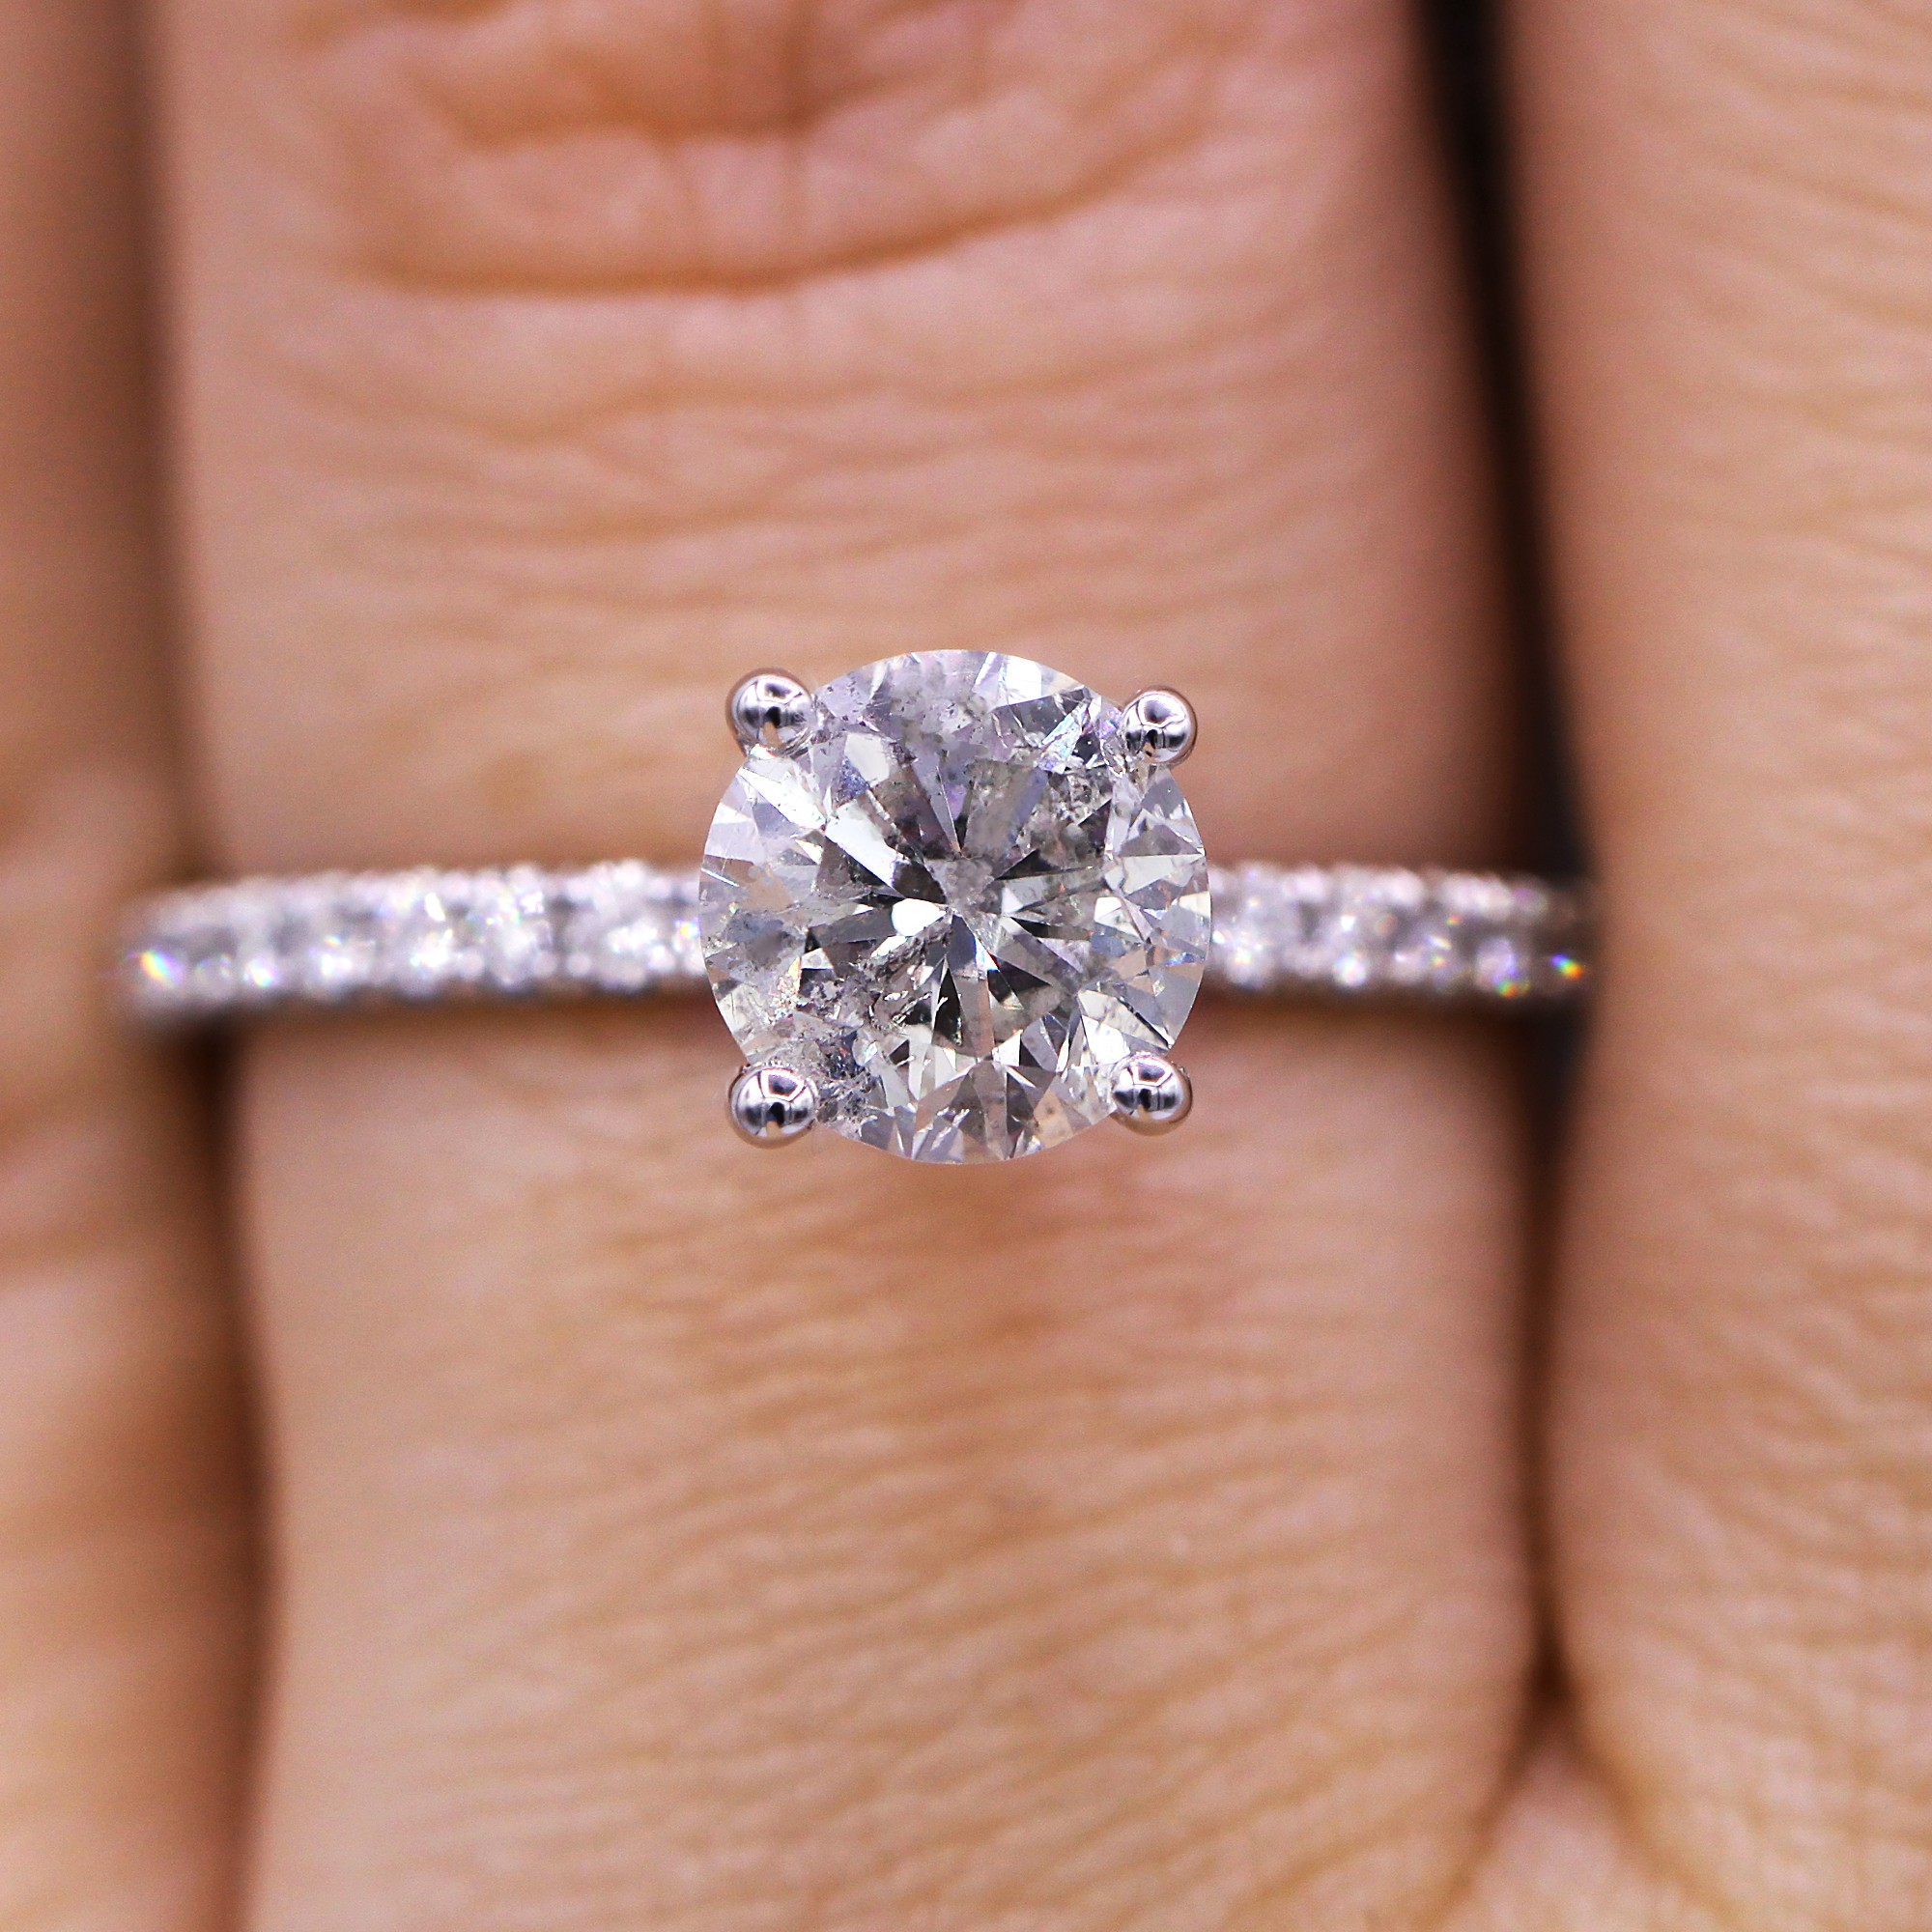 Delicate and classic diamond engagement ring